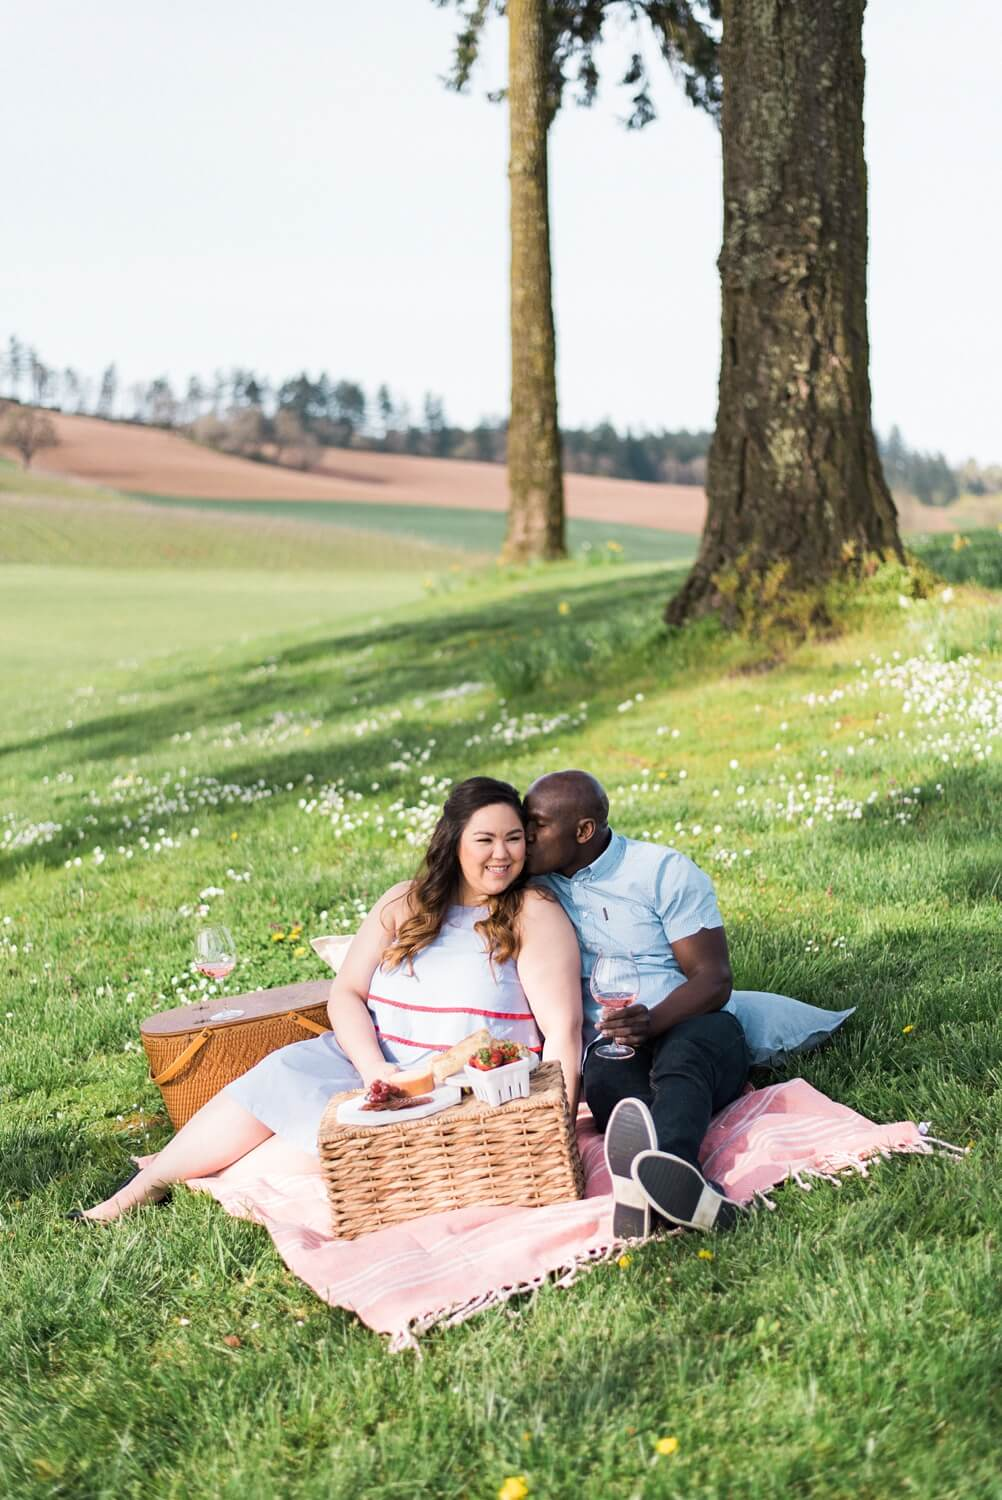 portland-vineyard-engagement-photos-daniel-andrea-050_cr.jpg